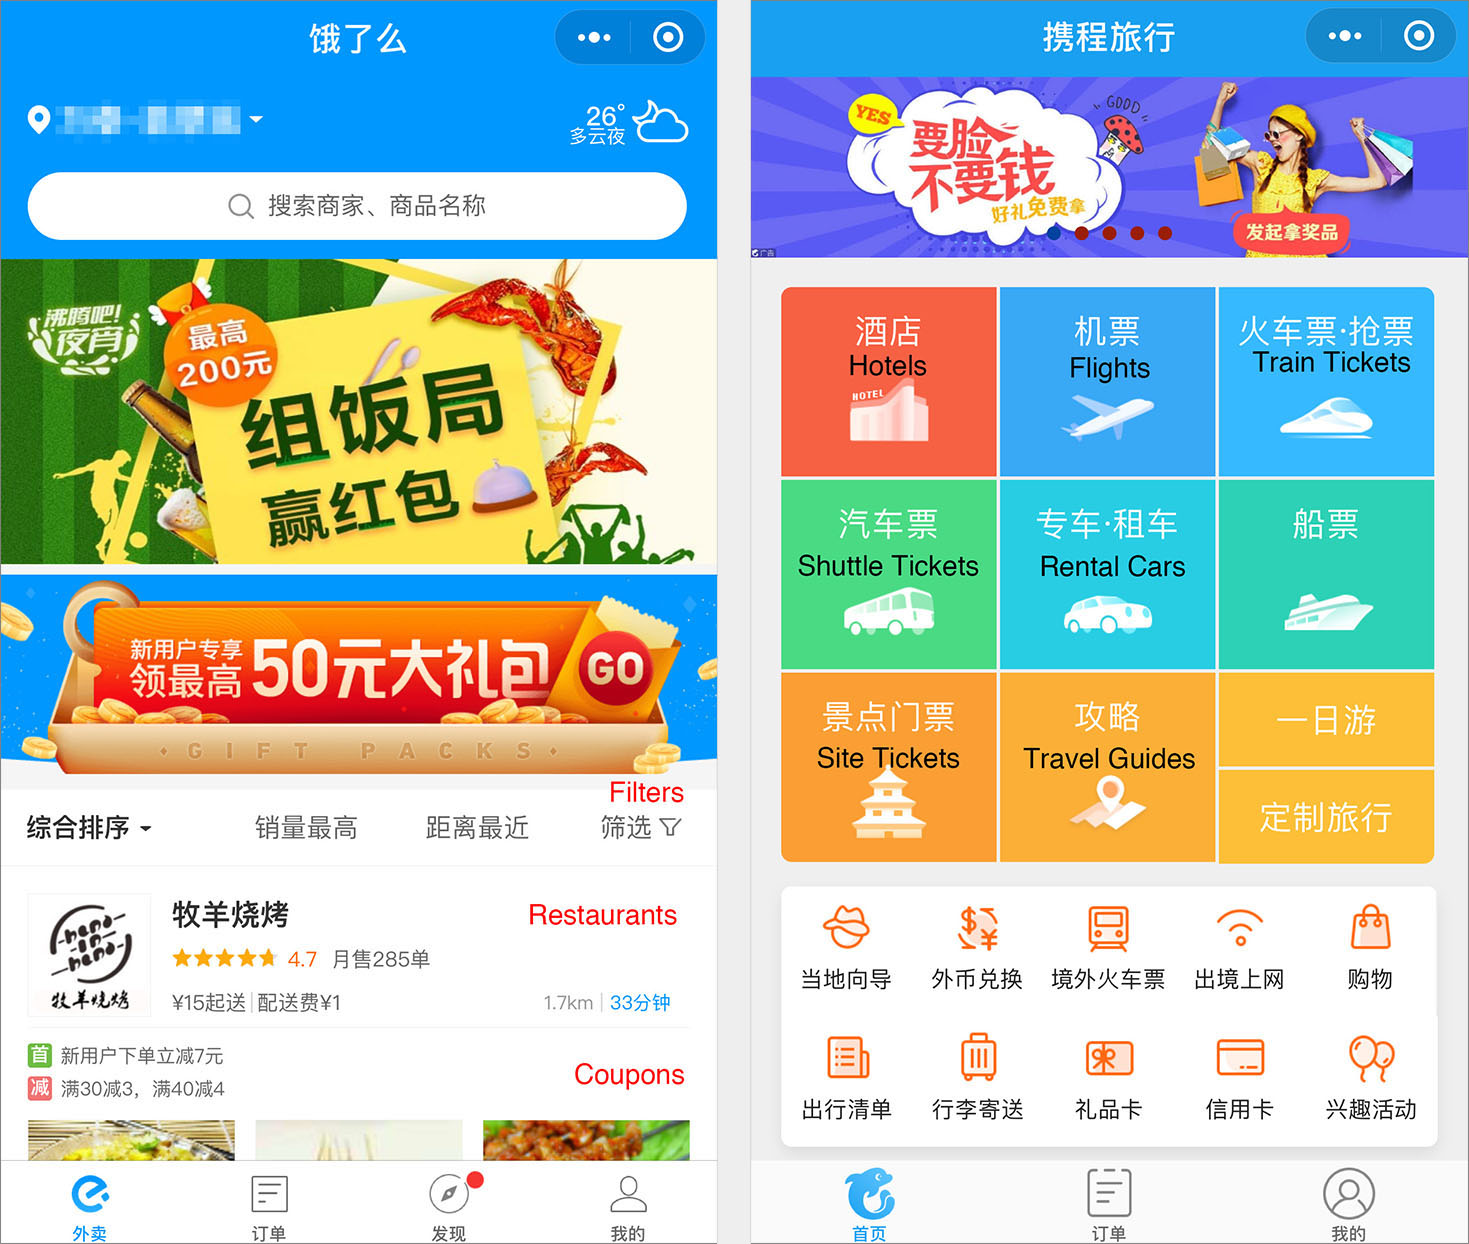 Two WeChat mini programs: The food-delivery mini program Are You Hungry (left) and the travel-booking program C trip (right). (We've superimposed some English translations on the screenshots for clarity.)